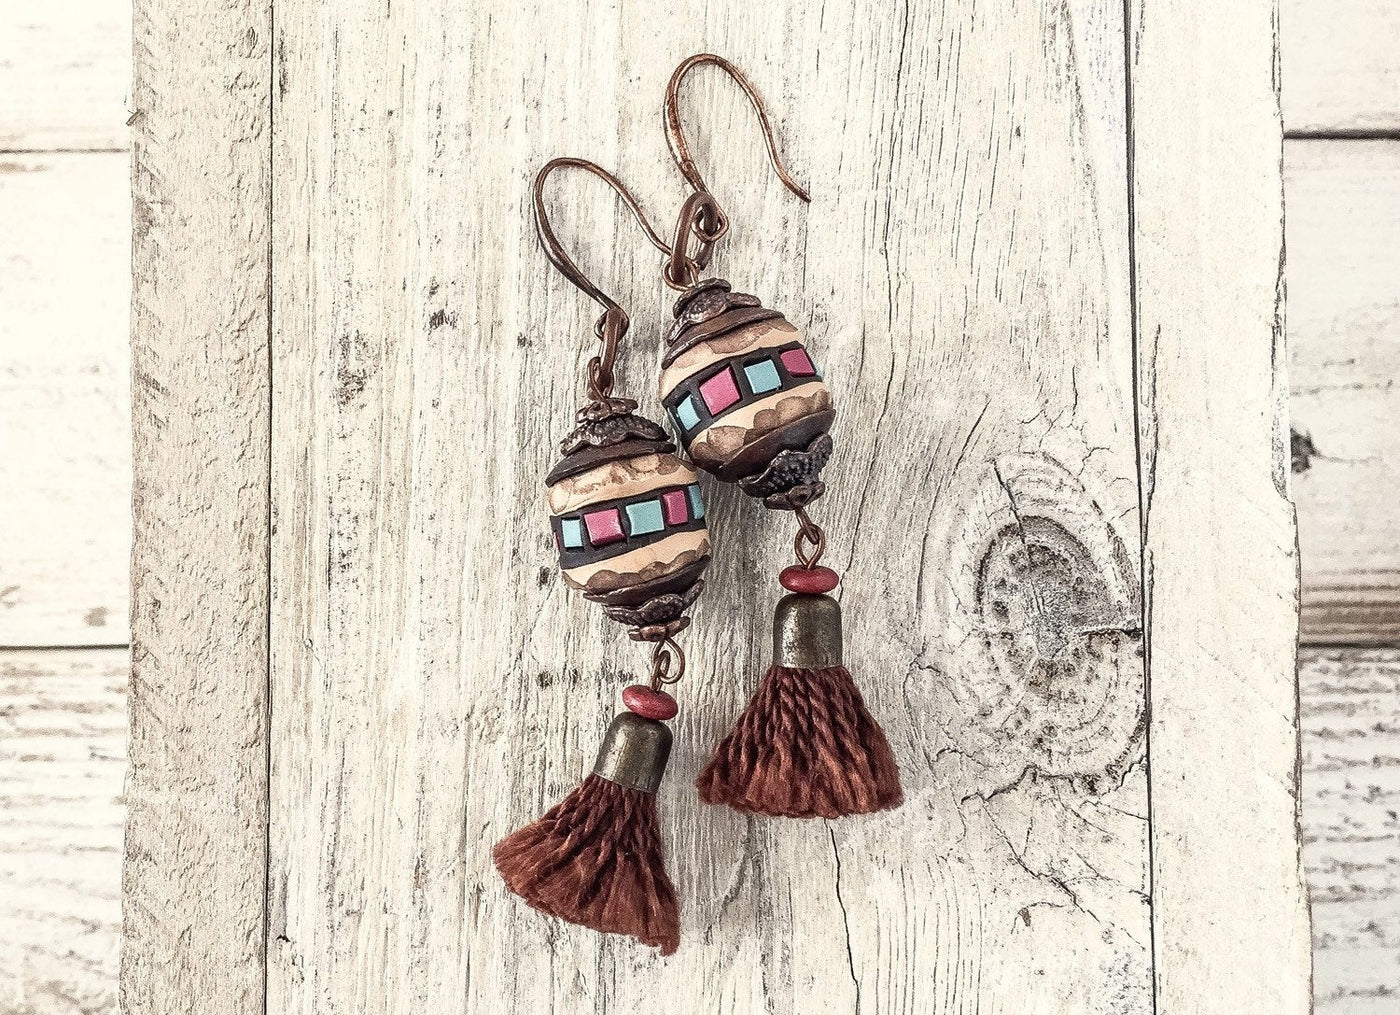 Rustic Tassel Earrings, Gypsy Clay Earrings, Bohemian Earthy Earrings, Tassel Clay Earrings, Boho Earrings, Gypsy Earrings, E109